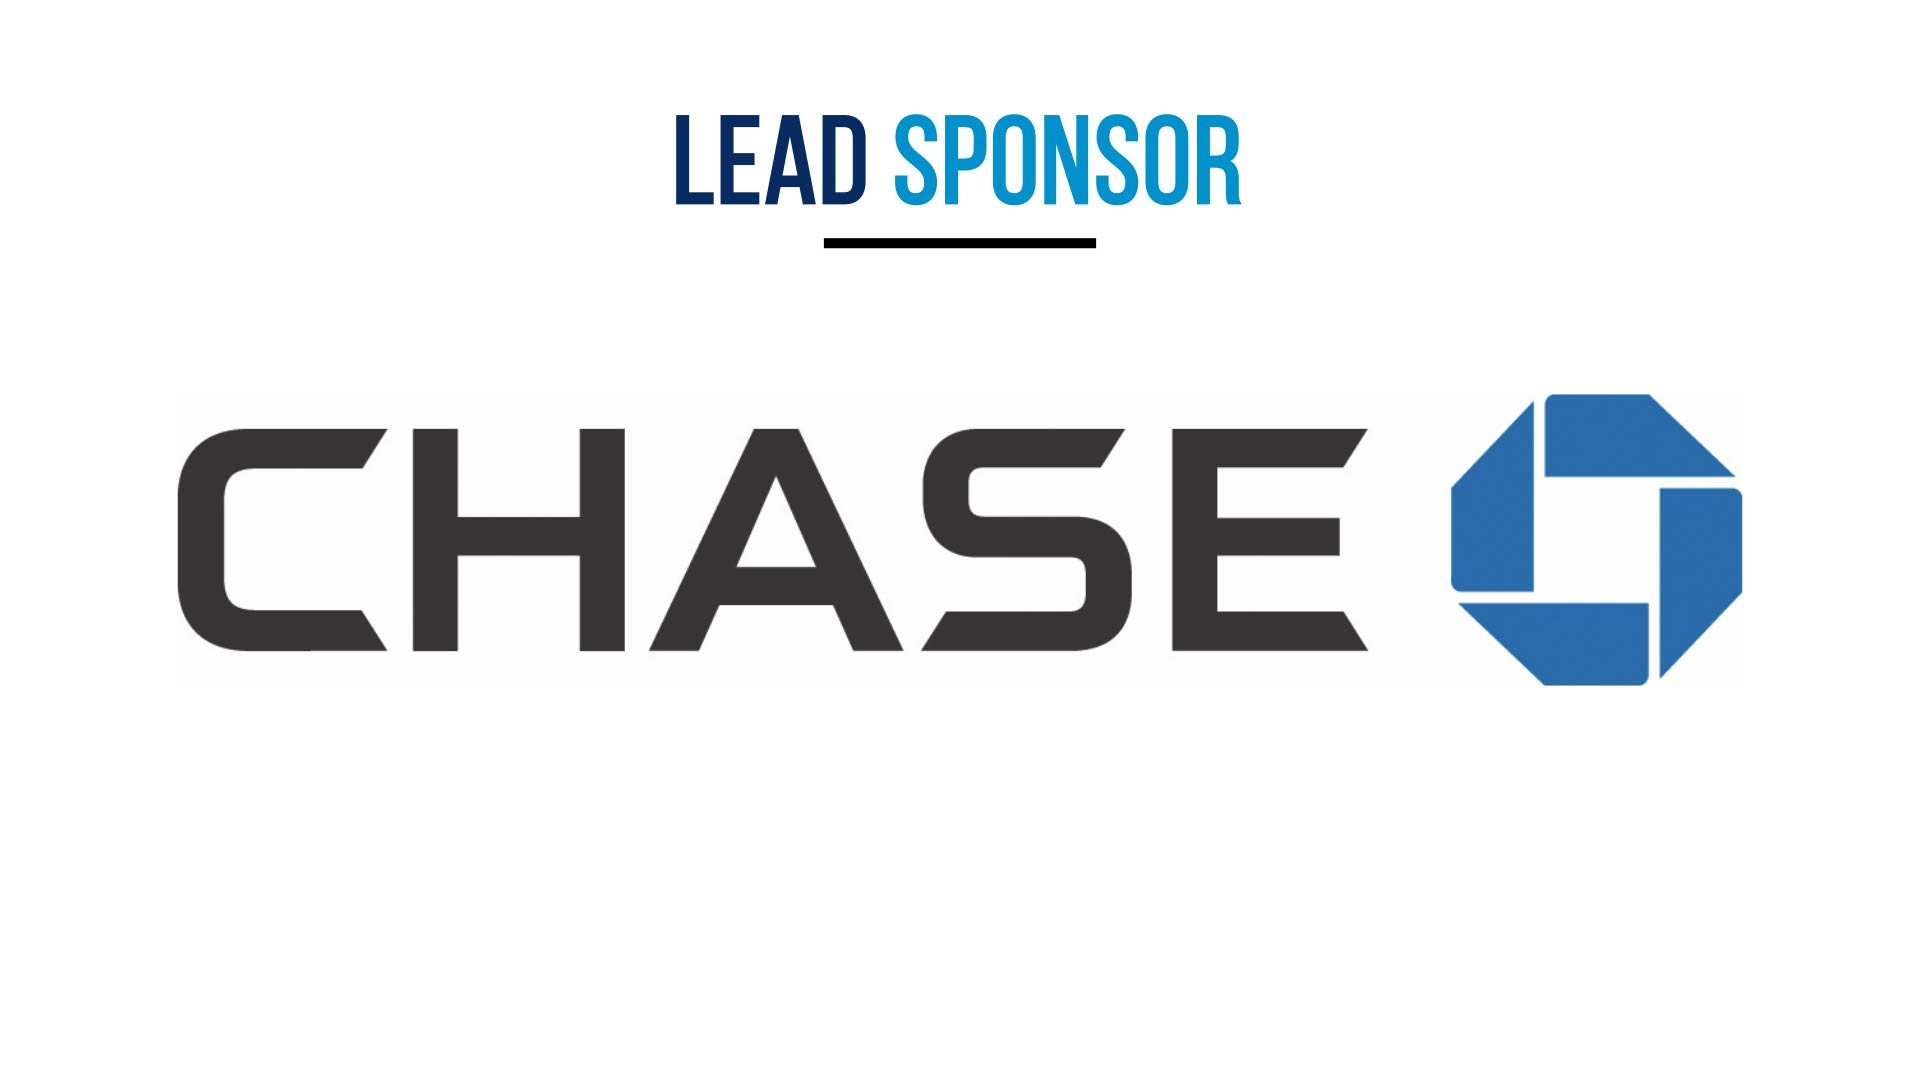 Chase LEAD